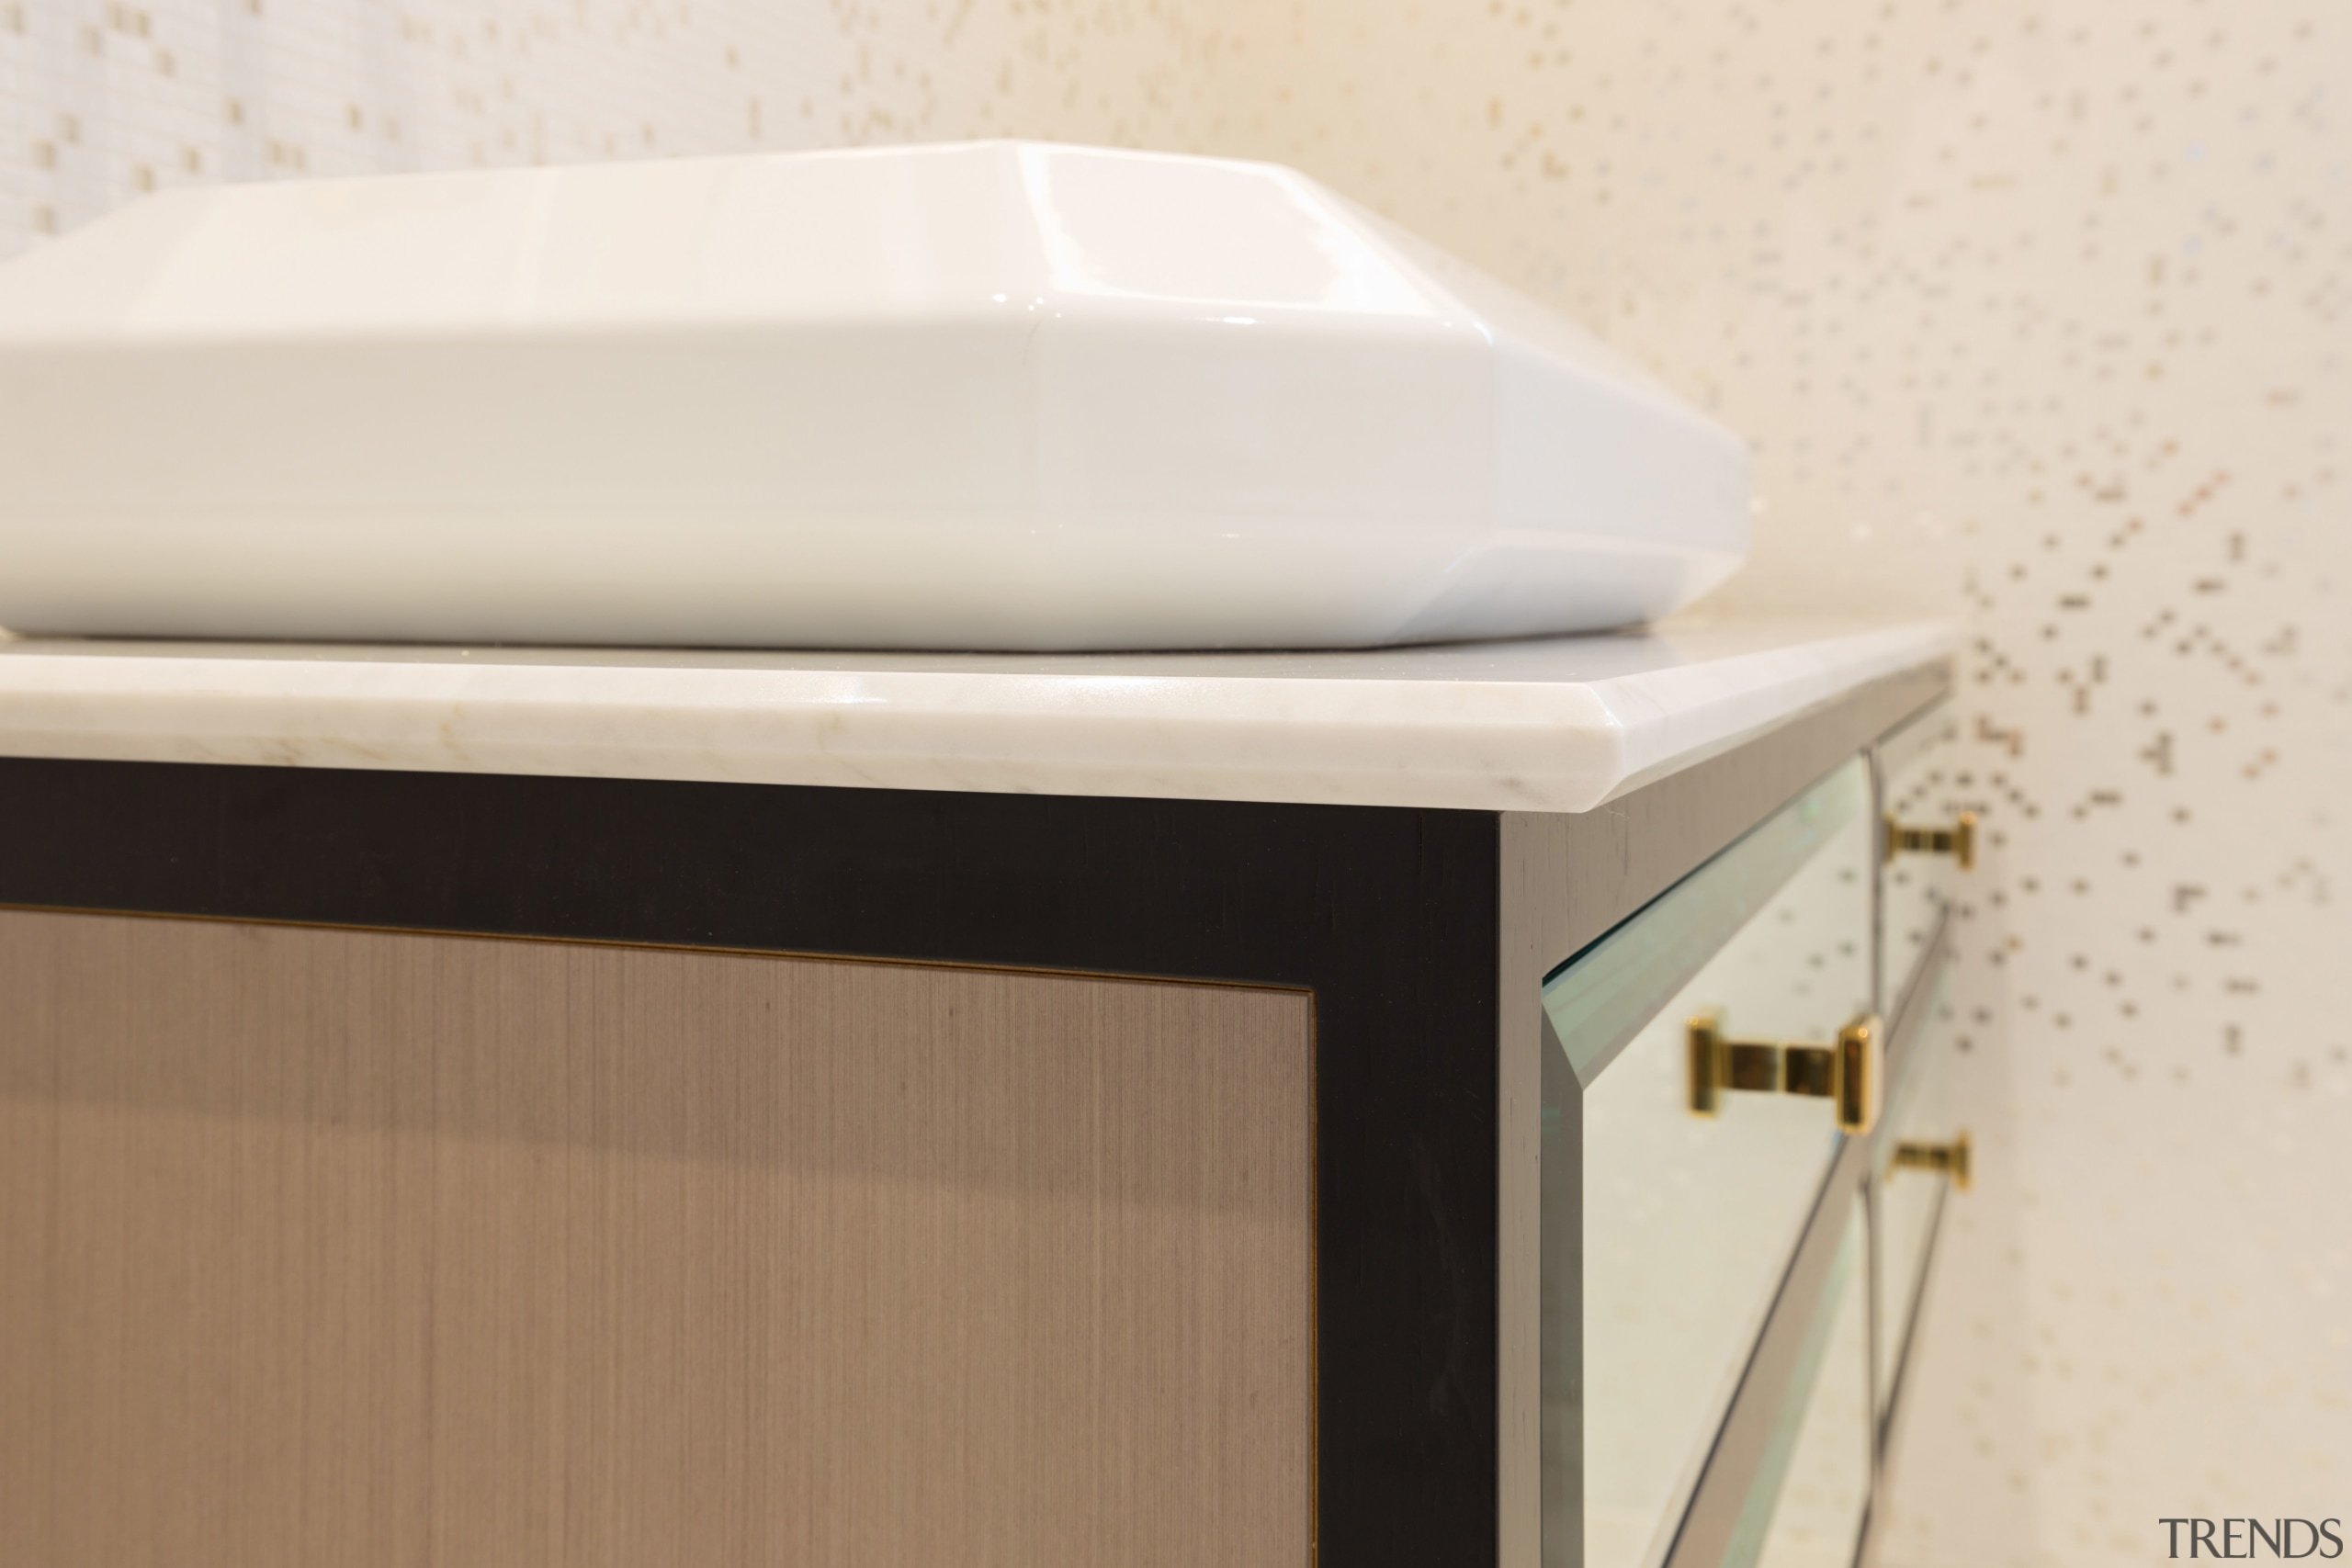 A bevelled edge on the basin is echoed plumbing fixture, product design, white